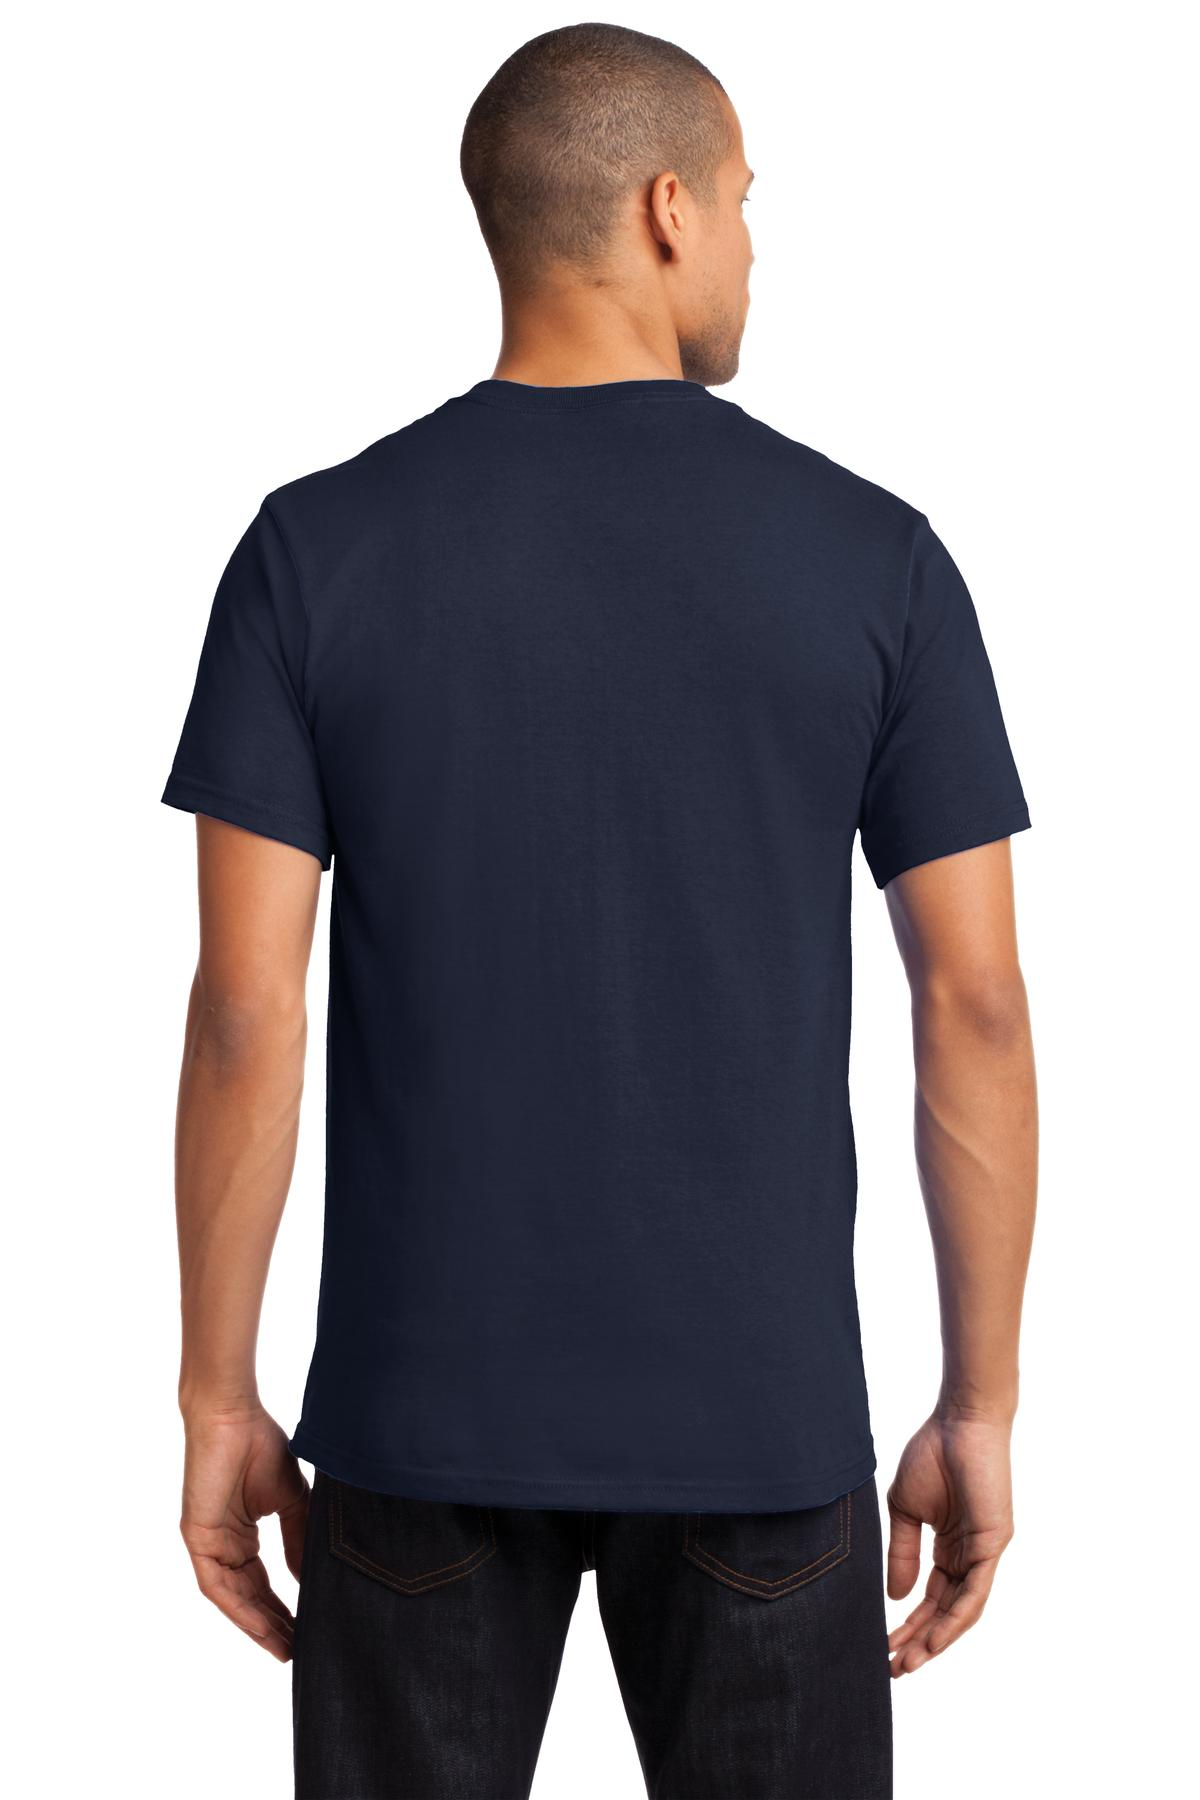 Port-amp-Company-Tall-Essential-TShirt-with-Pocket-PC61PT-Size-LT-4XLT thumbnail 16